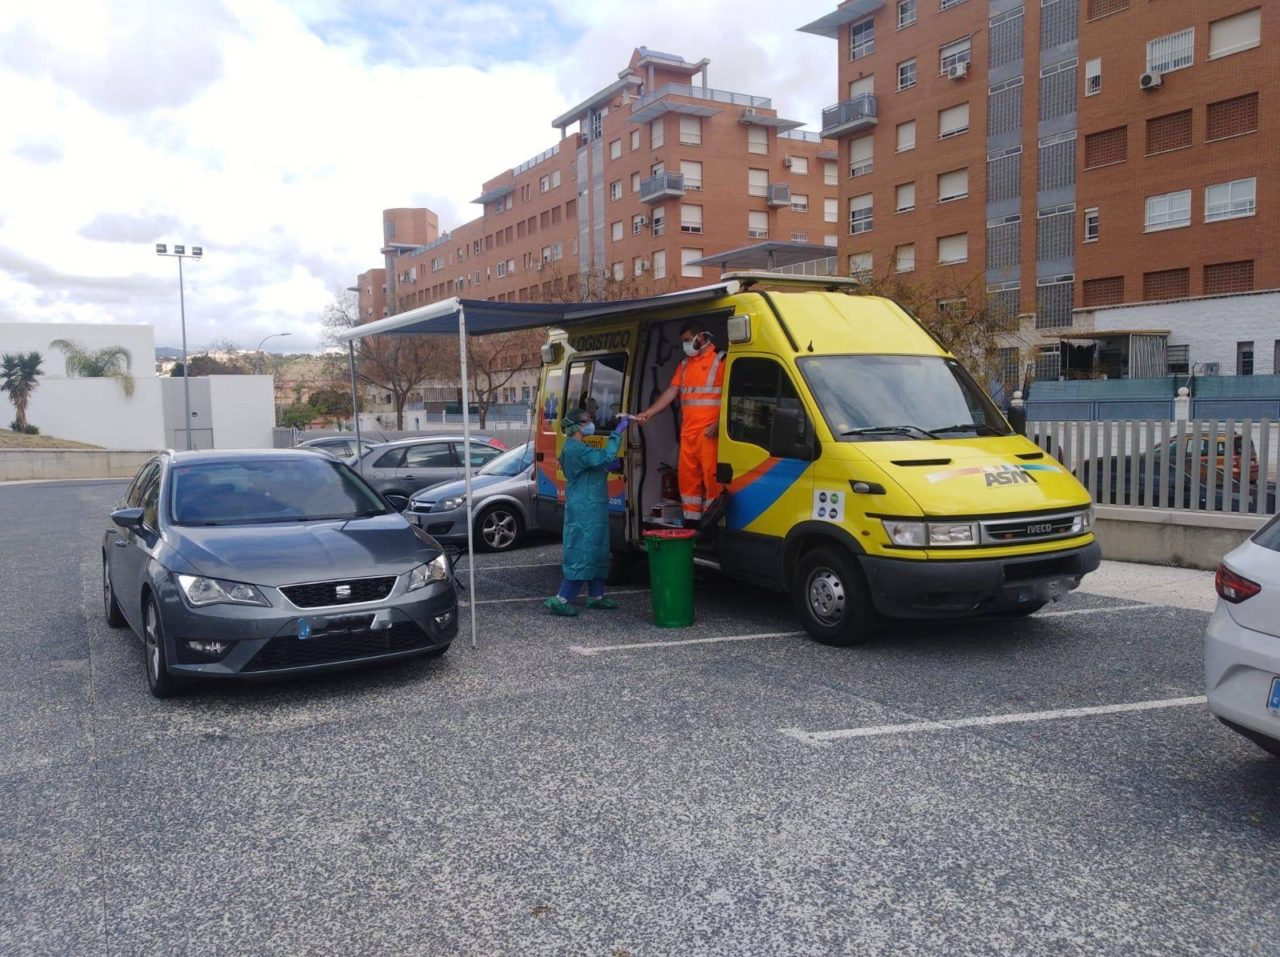 https://ambulancias-malaga.com/wp-content/uploads/2020/04/NOTICIA-1-1280x957.jpg